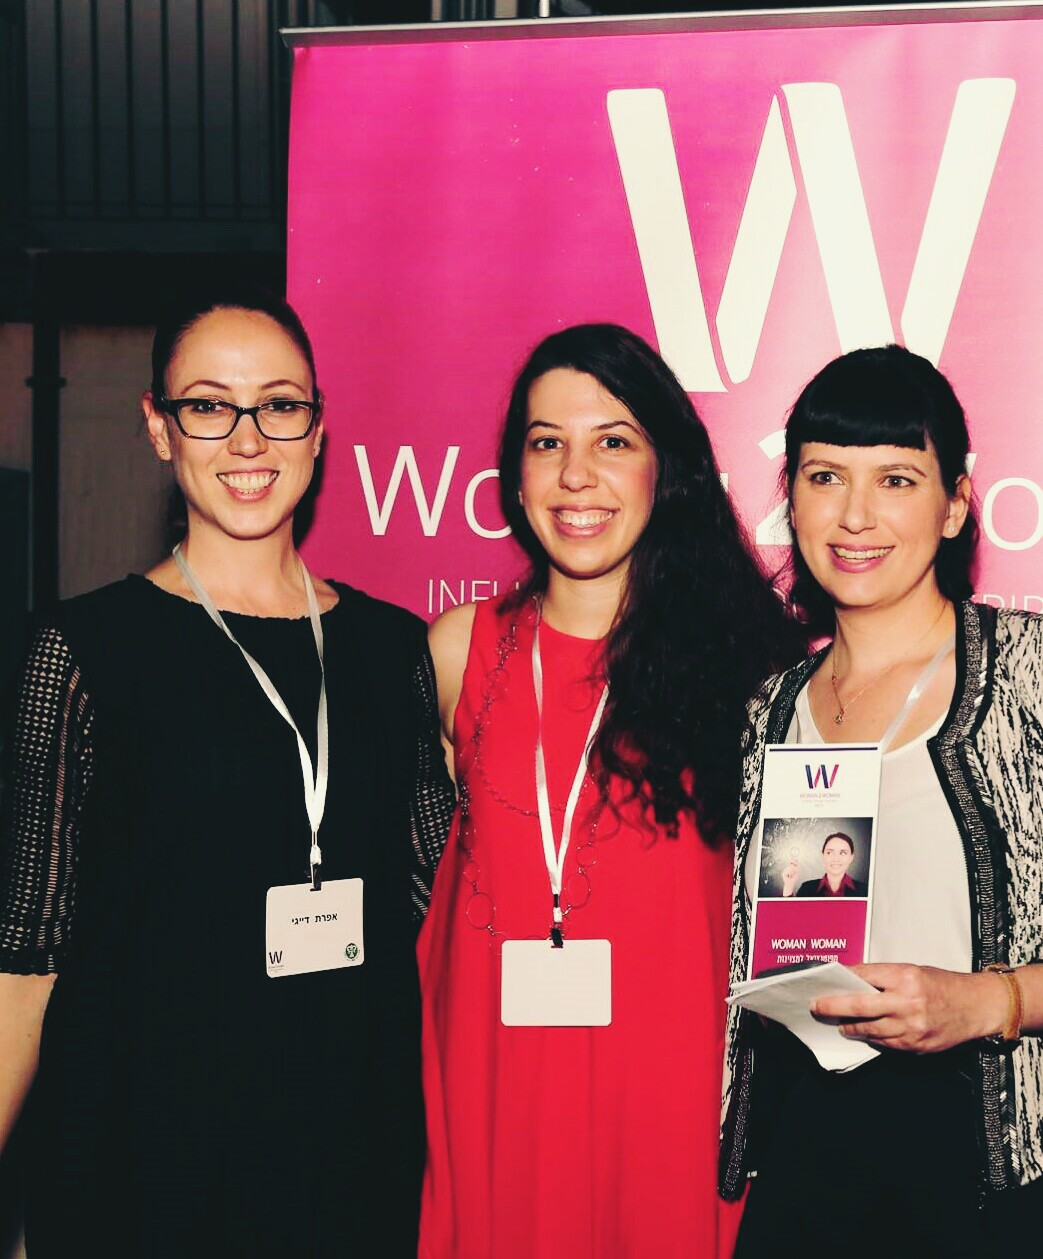 Woman2Woman cofounders, from left, Efrat Dayagi, Keren Herscovici and Noya Lempert. Photo: courtesy